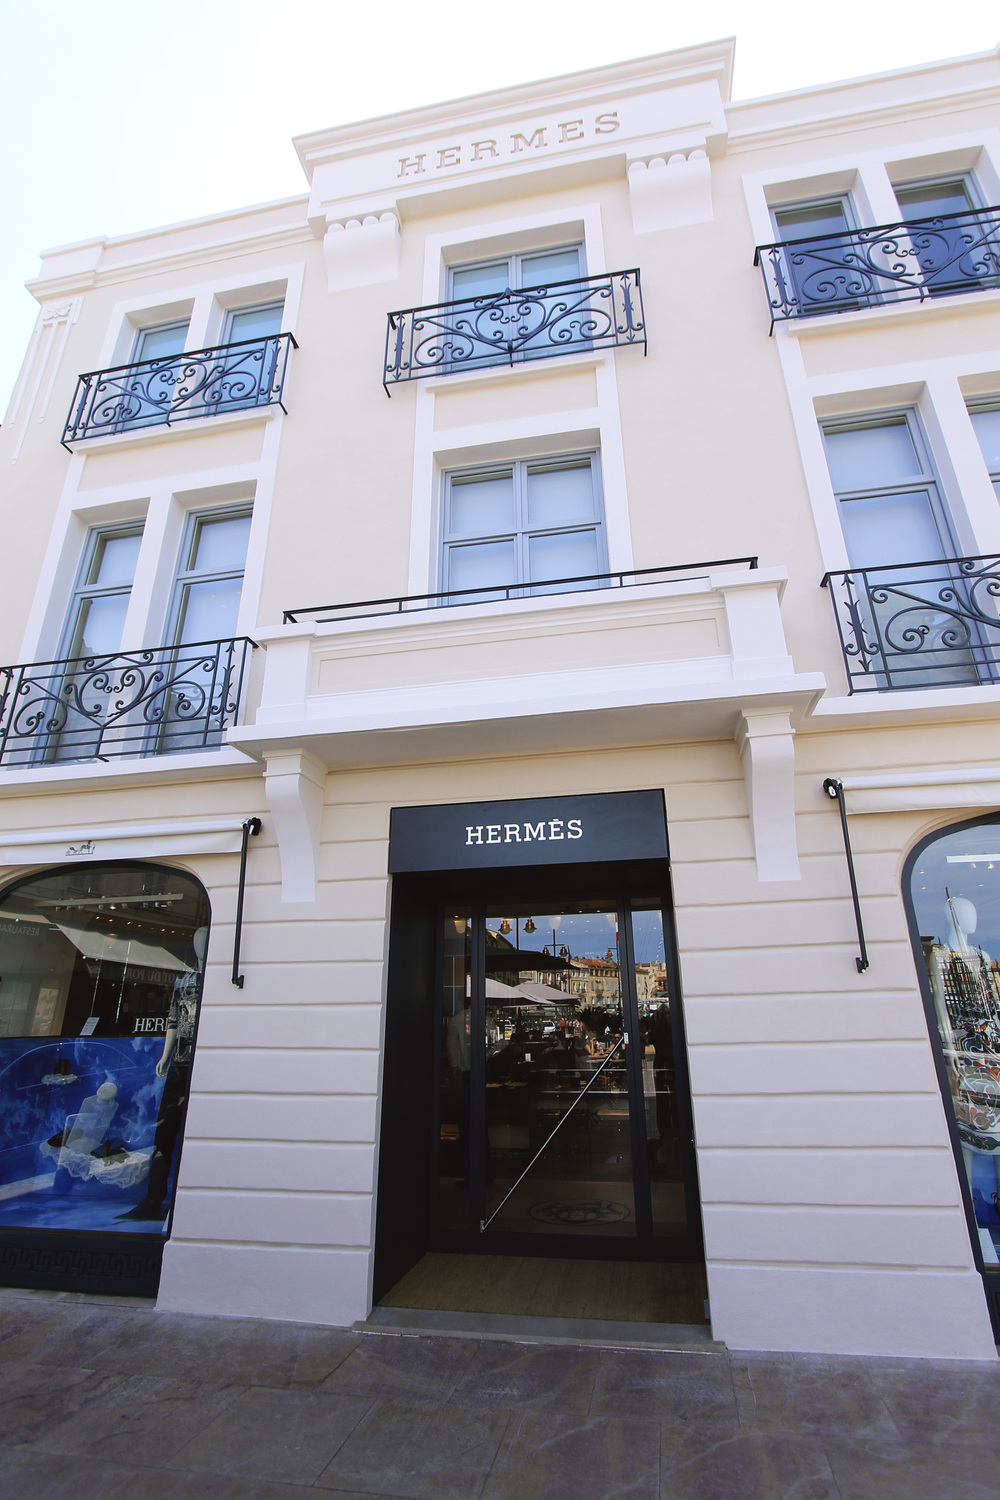 hermes boutique store st tropez france